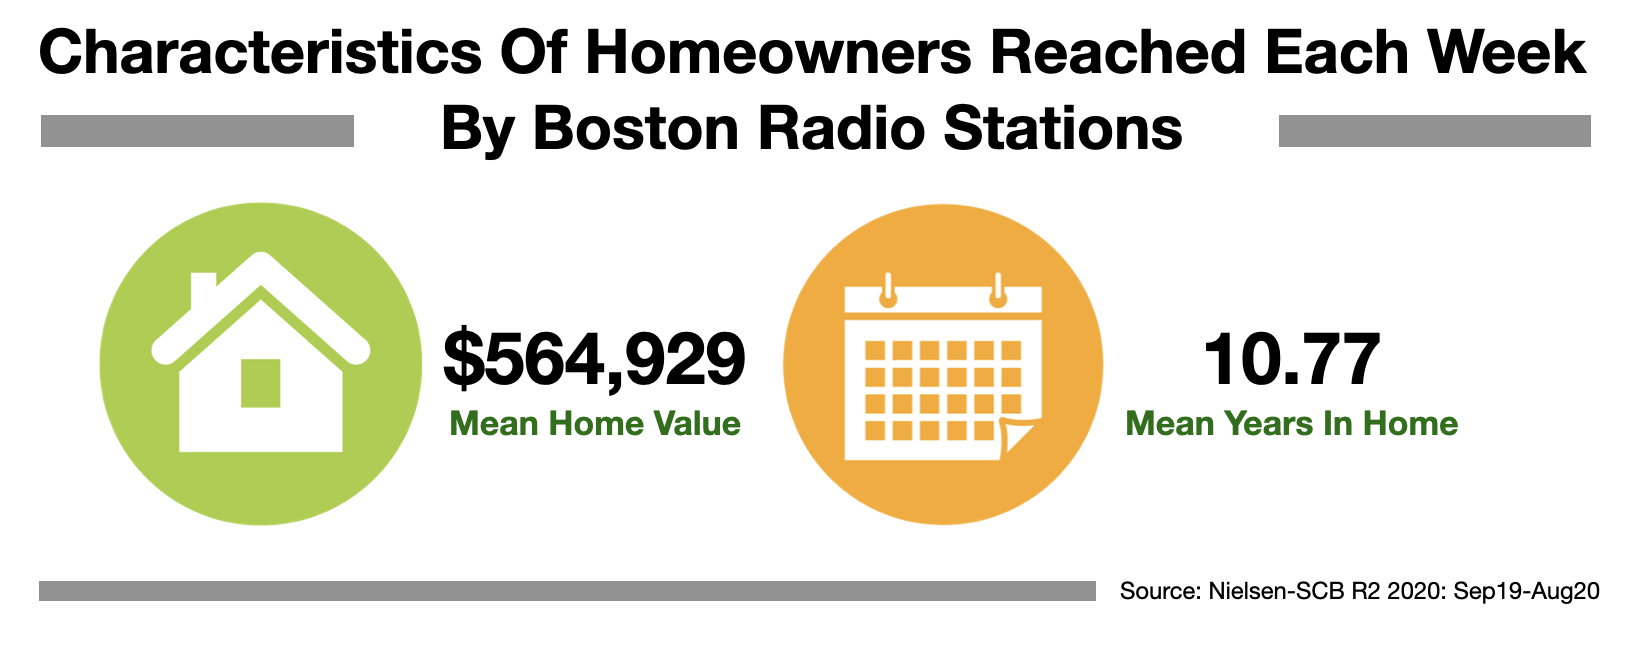 Advertise In Boston: Reach Homeowners